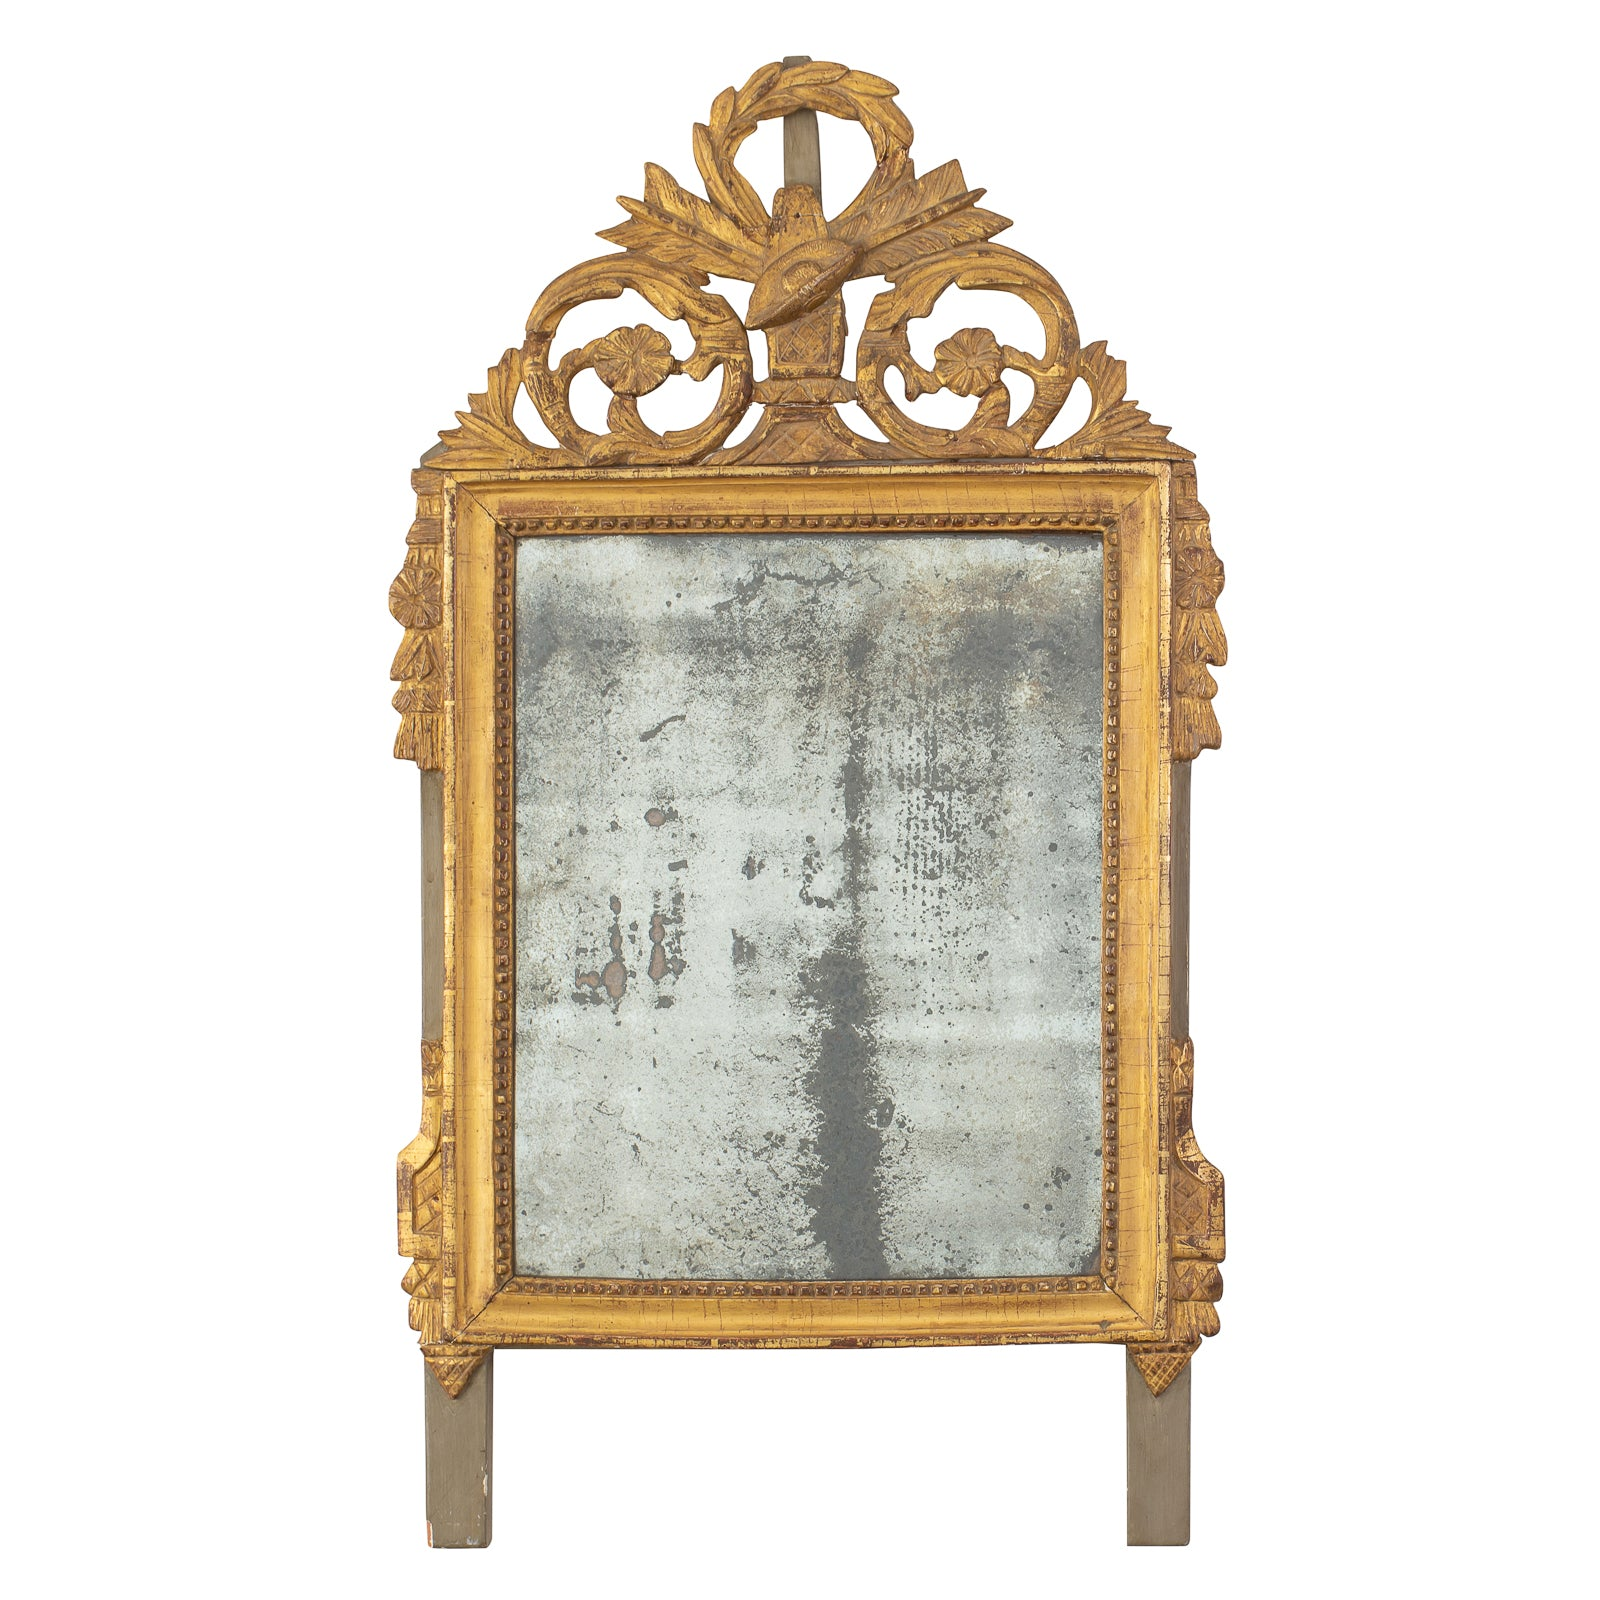 A Small Directoire Period Giltwood Mirror